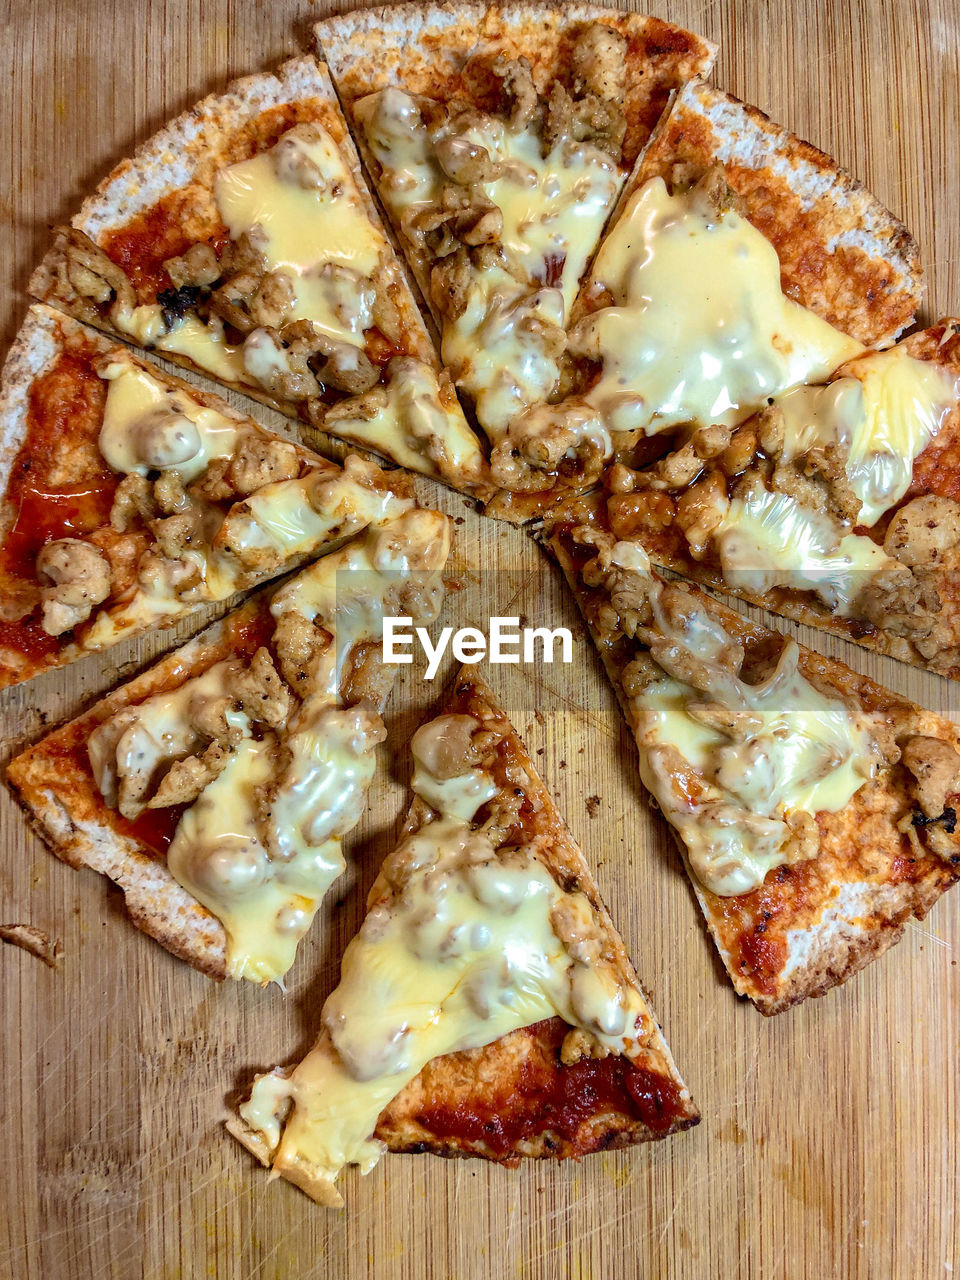 HIGH ANGLE VIEW OF PIZZA IN BOWL